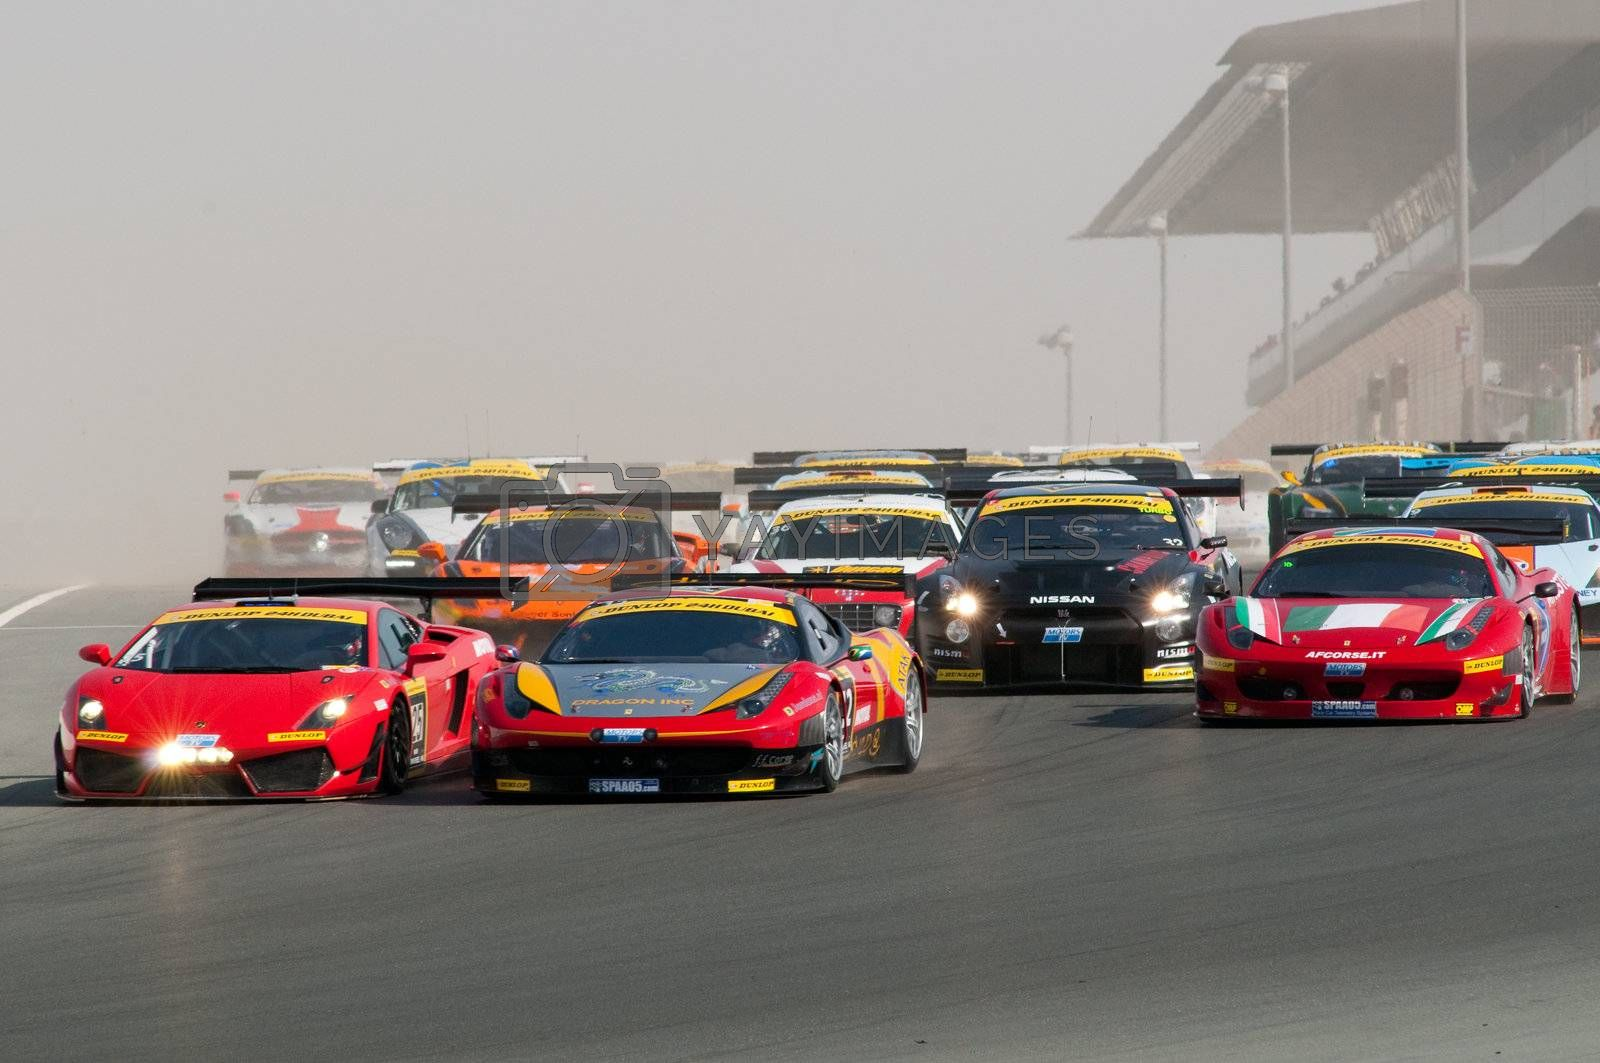 DUBAI - JANUARY 13: 75 cars coming down the dusty start-finish straight at the start of the 2012 Dunlop 24 Hour Race at Dubai Autodrome on January 13, 2012.